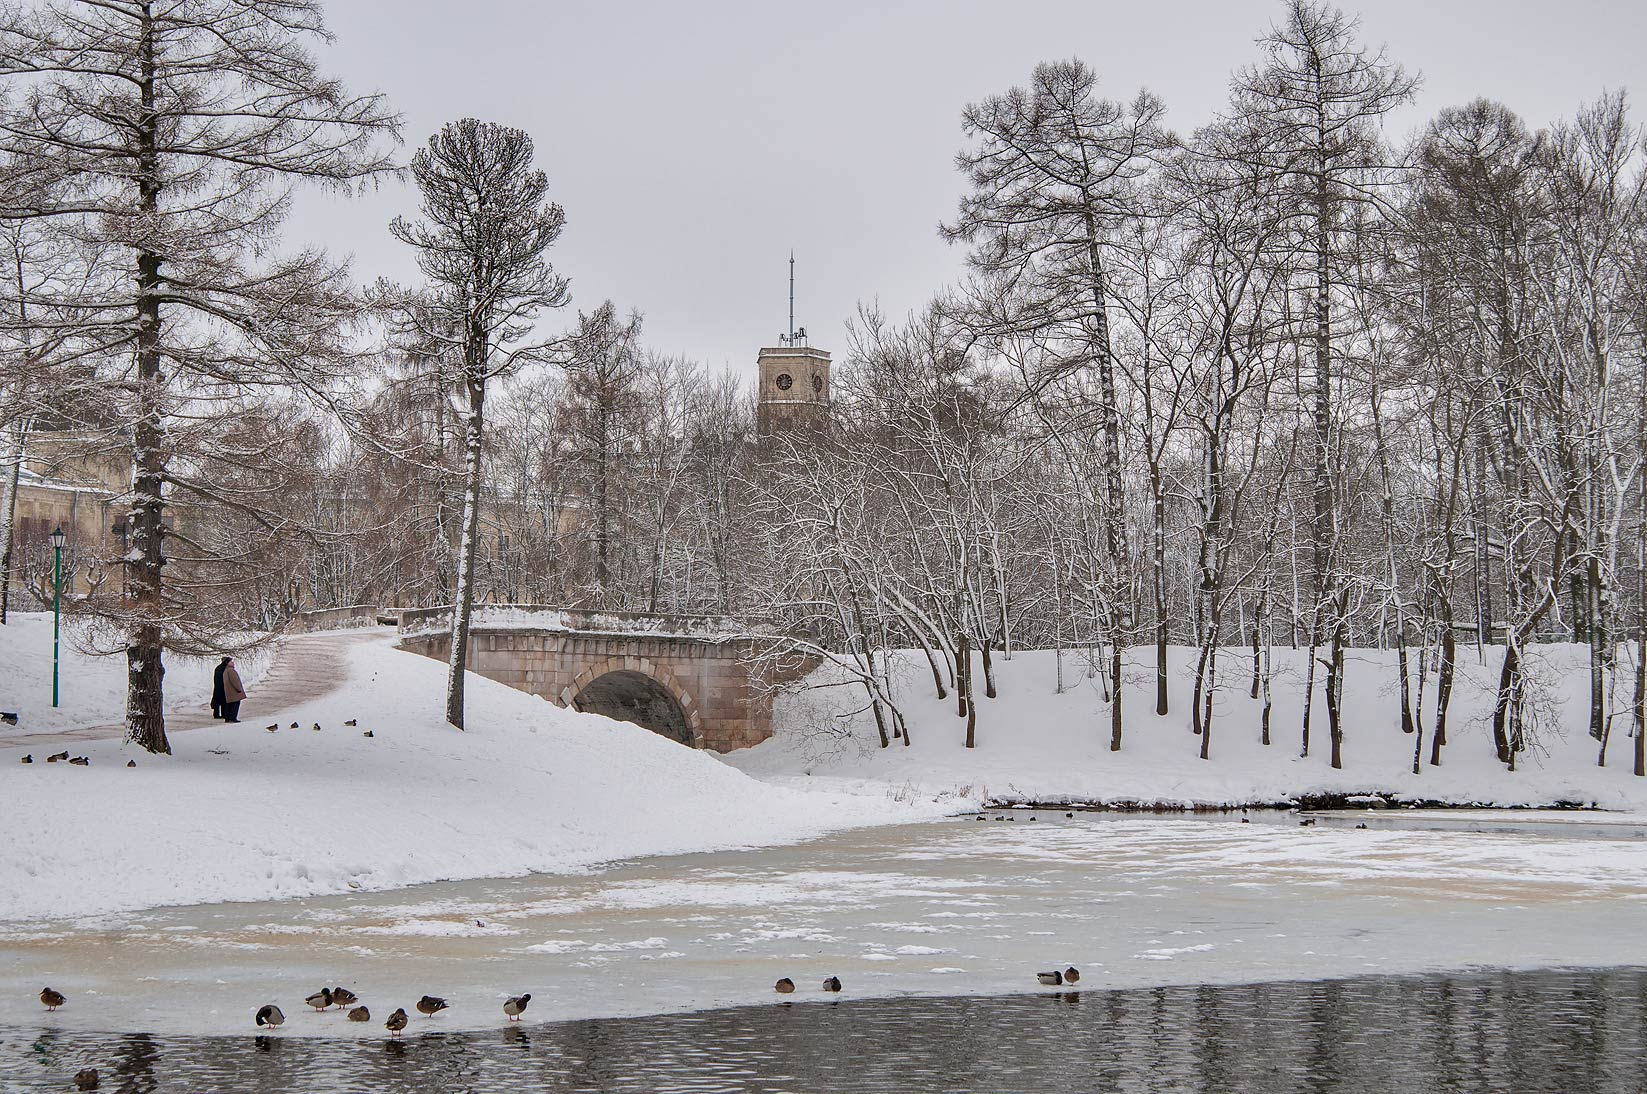 Beloe Lake ner Karpin Pond in the park of Gatchina, suburb of St.Petersburg, Russia